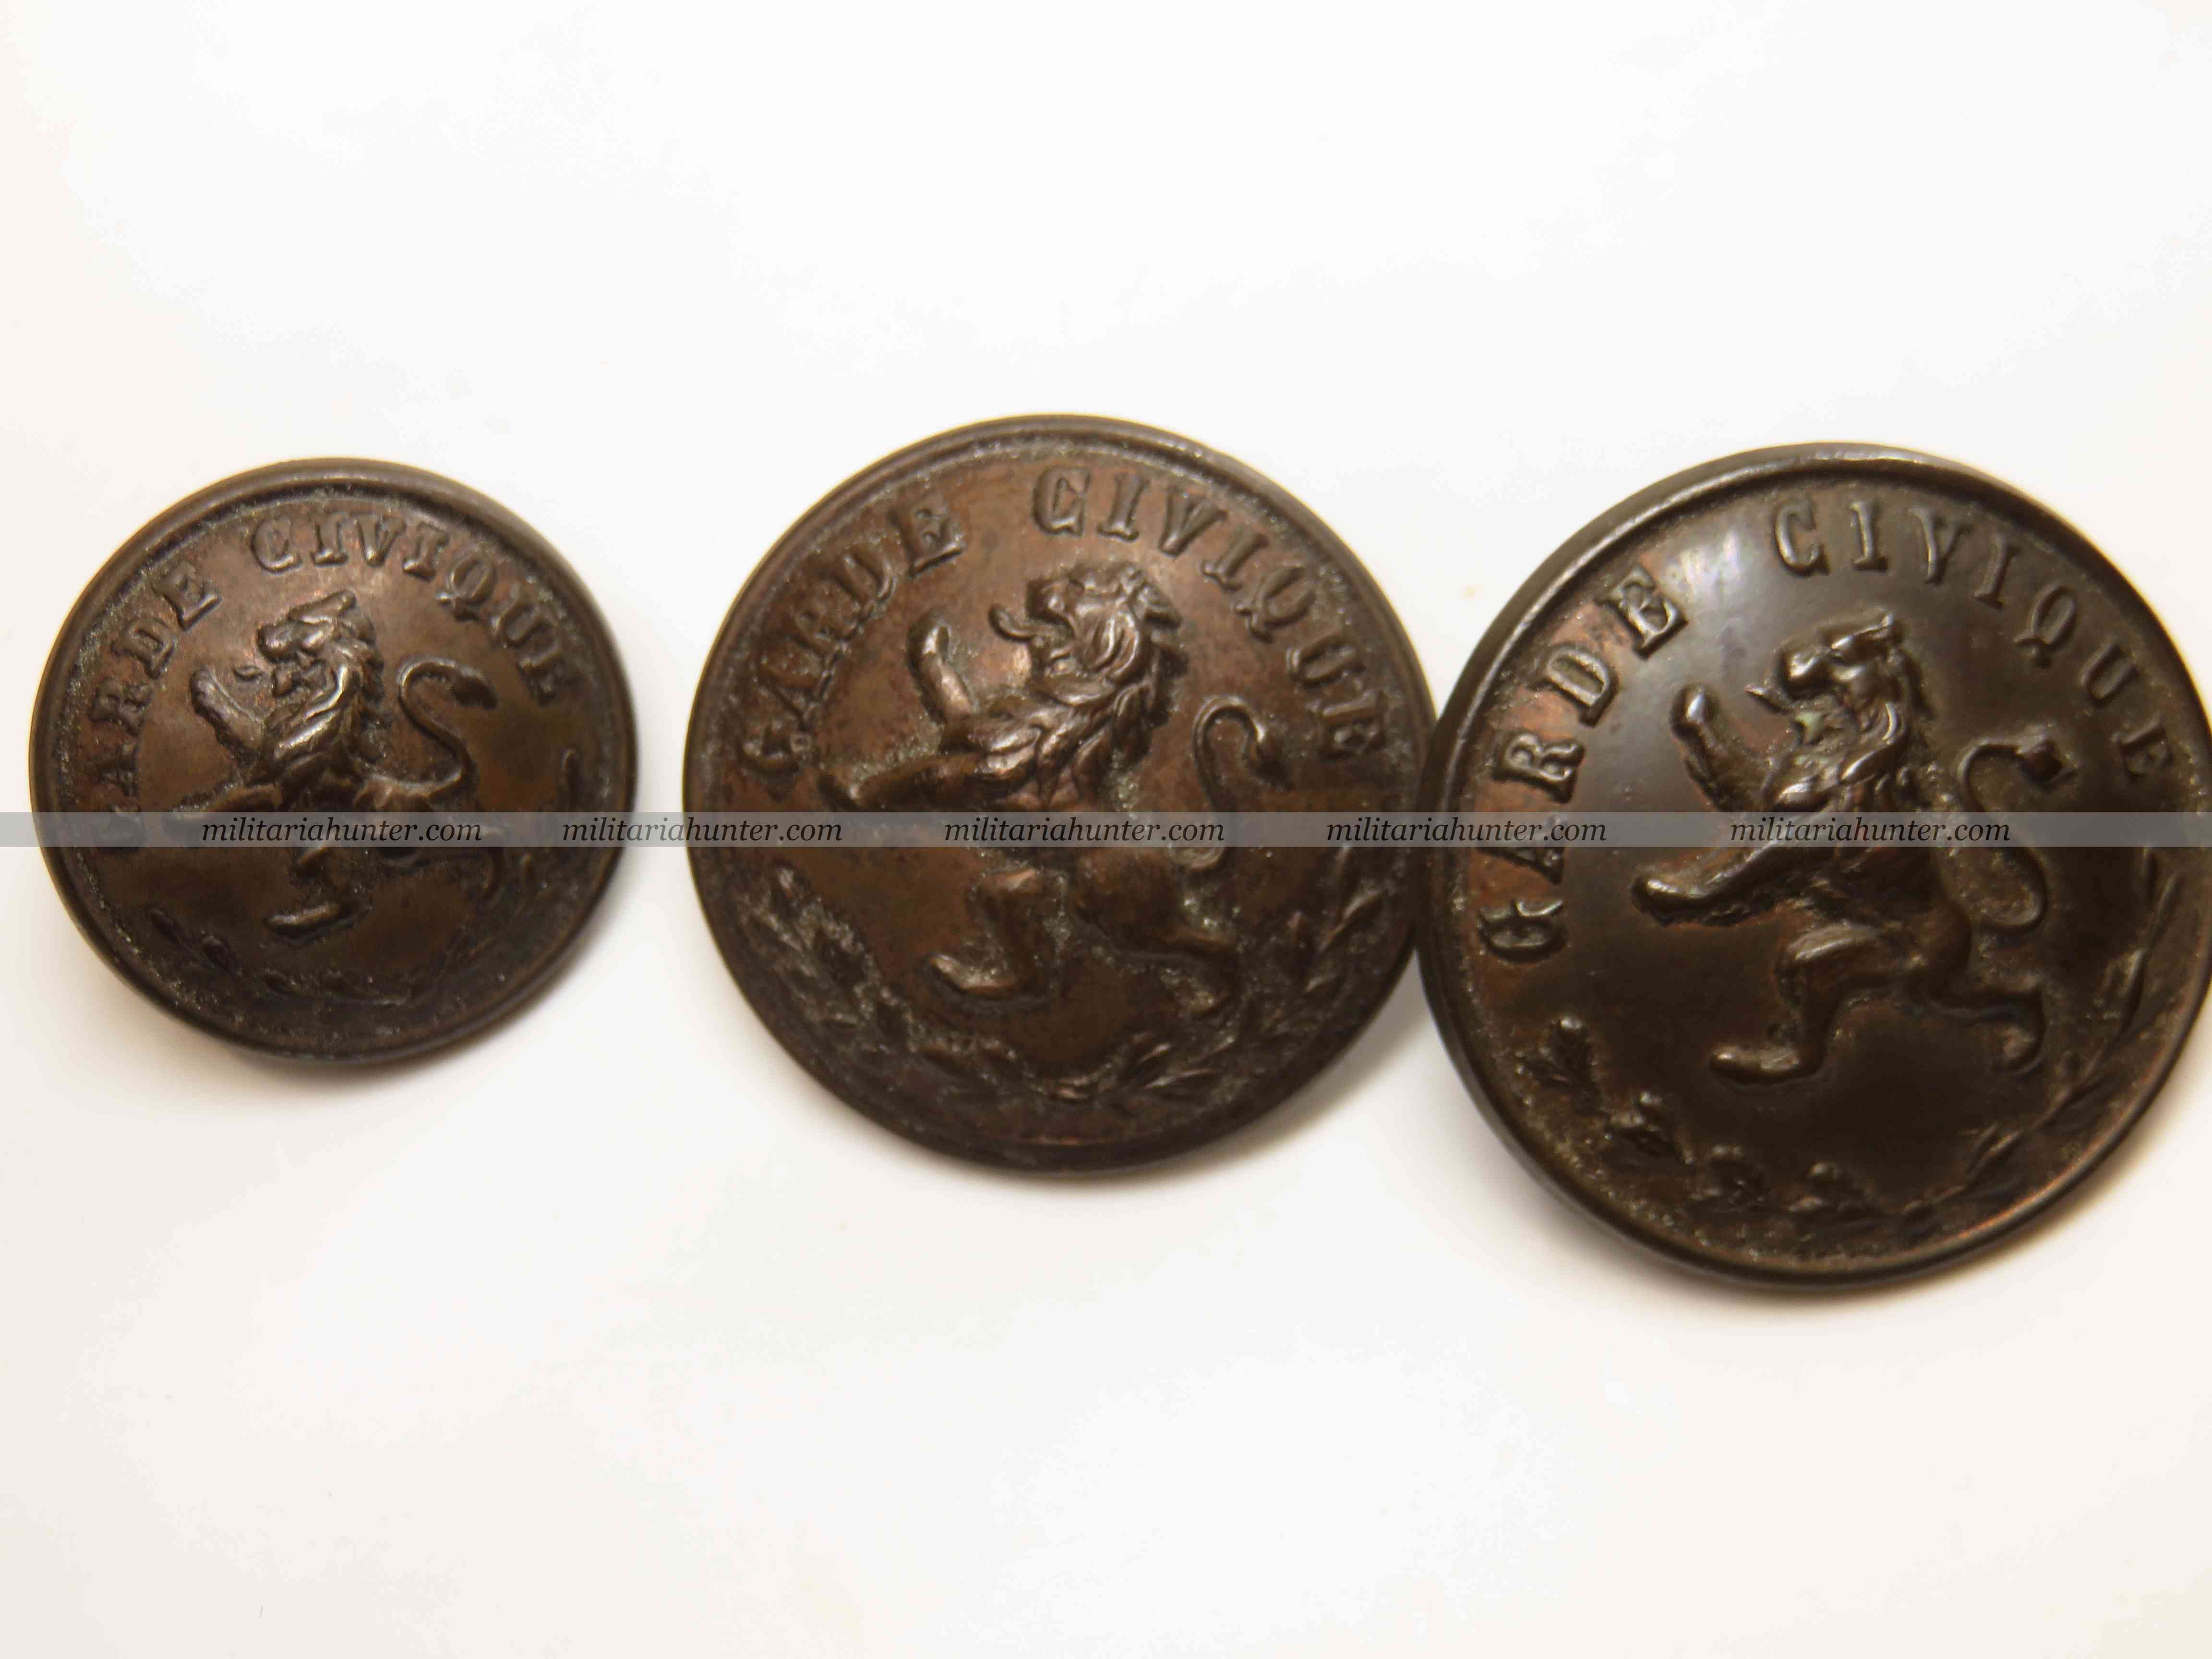 militaria : Belgique 1870-1914 lot de 3 Boutons Garde Civique